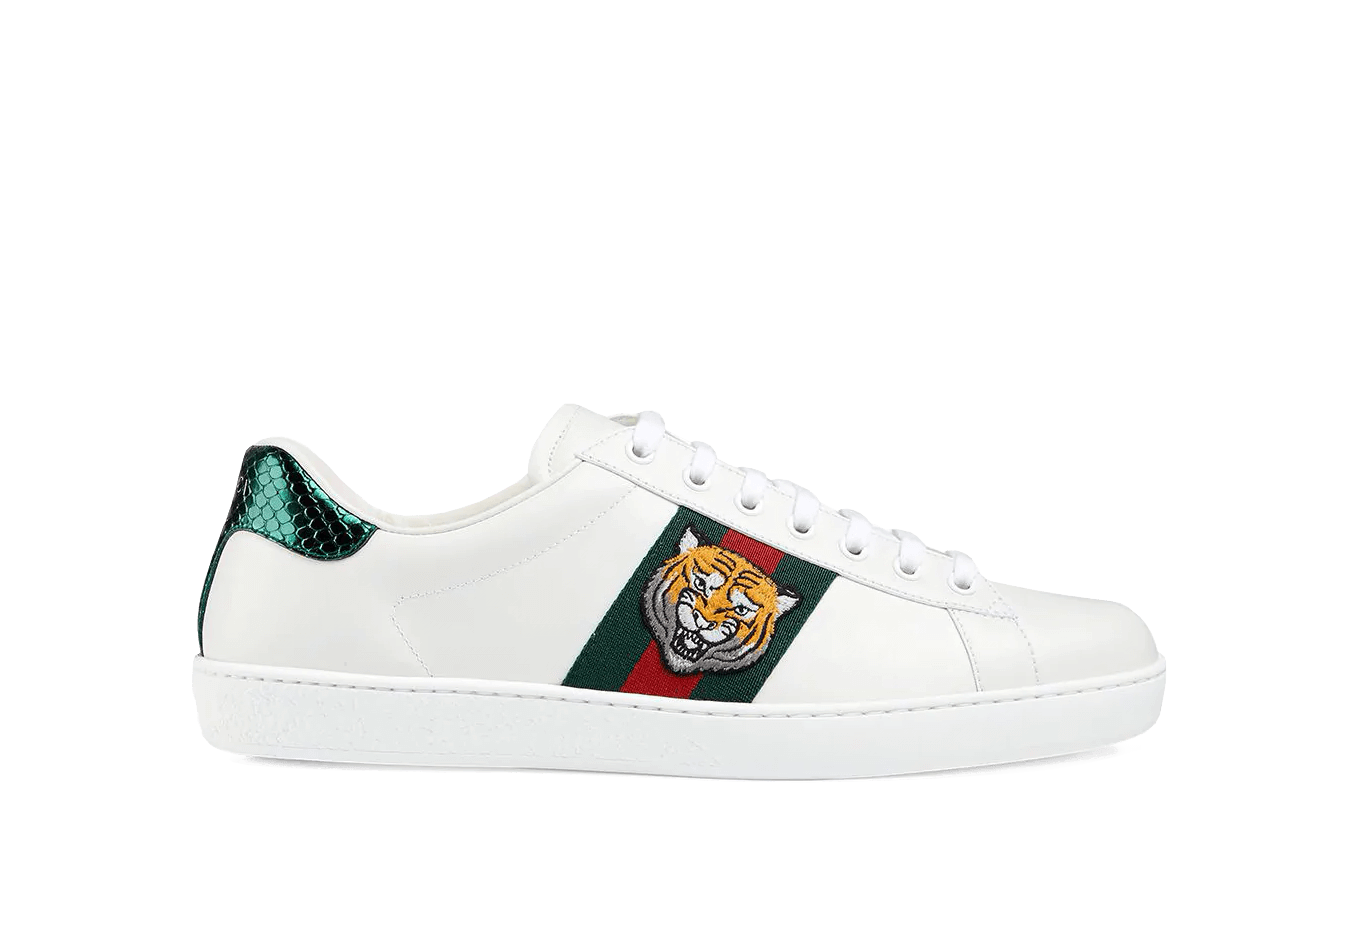 Gucci     Tiger Appliqued the best workout inspiration